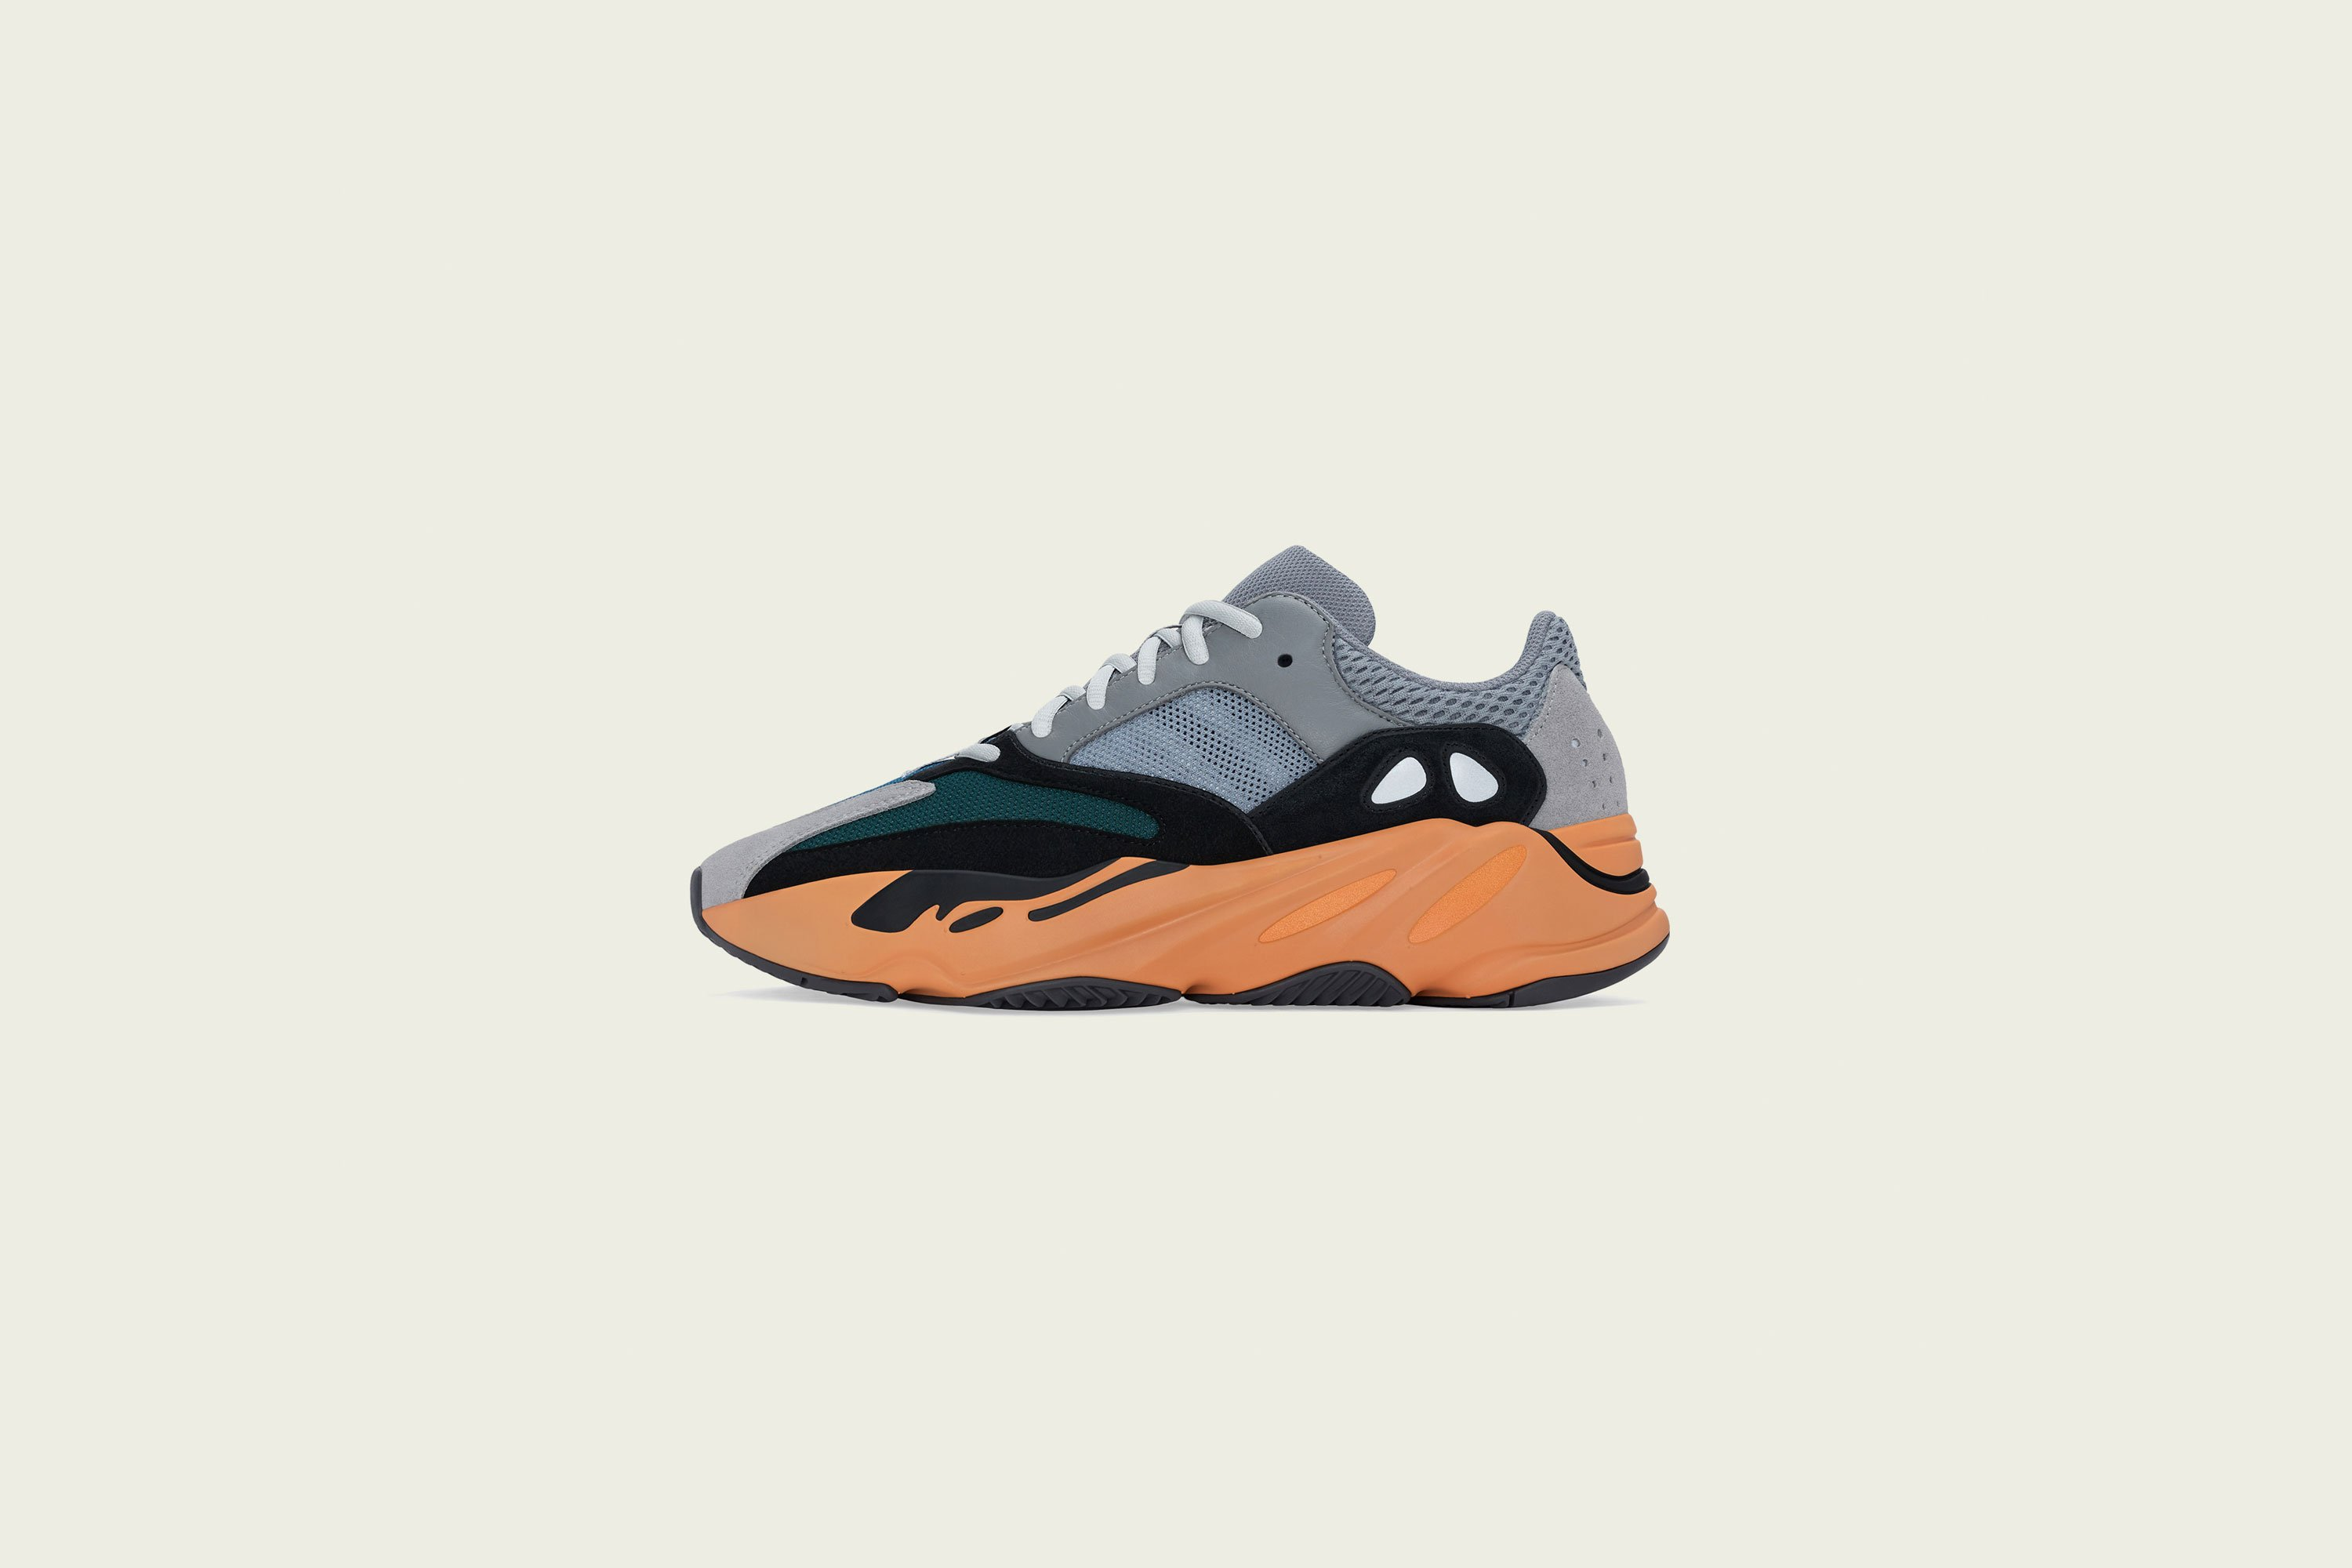 adidas - Yeezy Boost 700 - Wash Orange - Up There